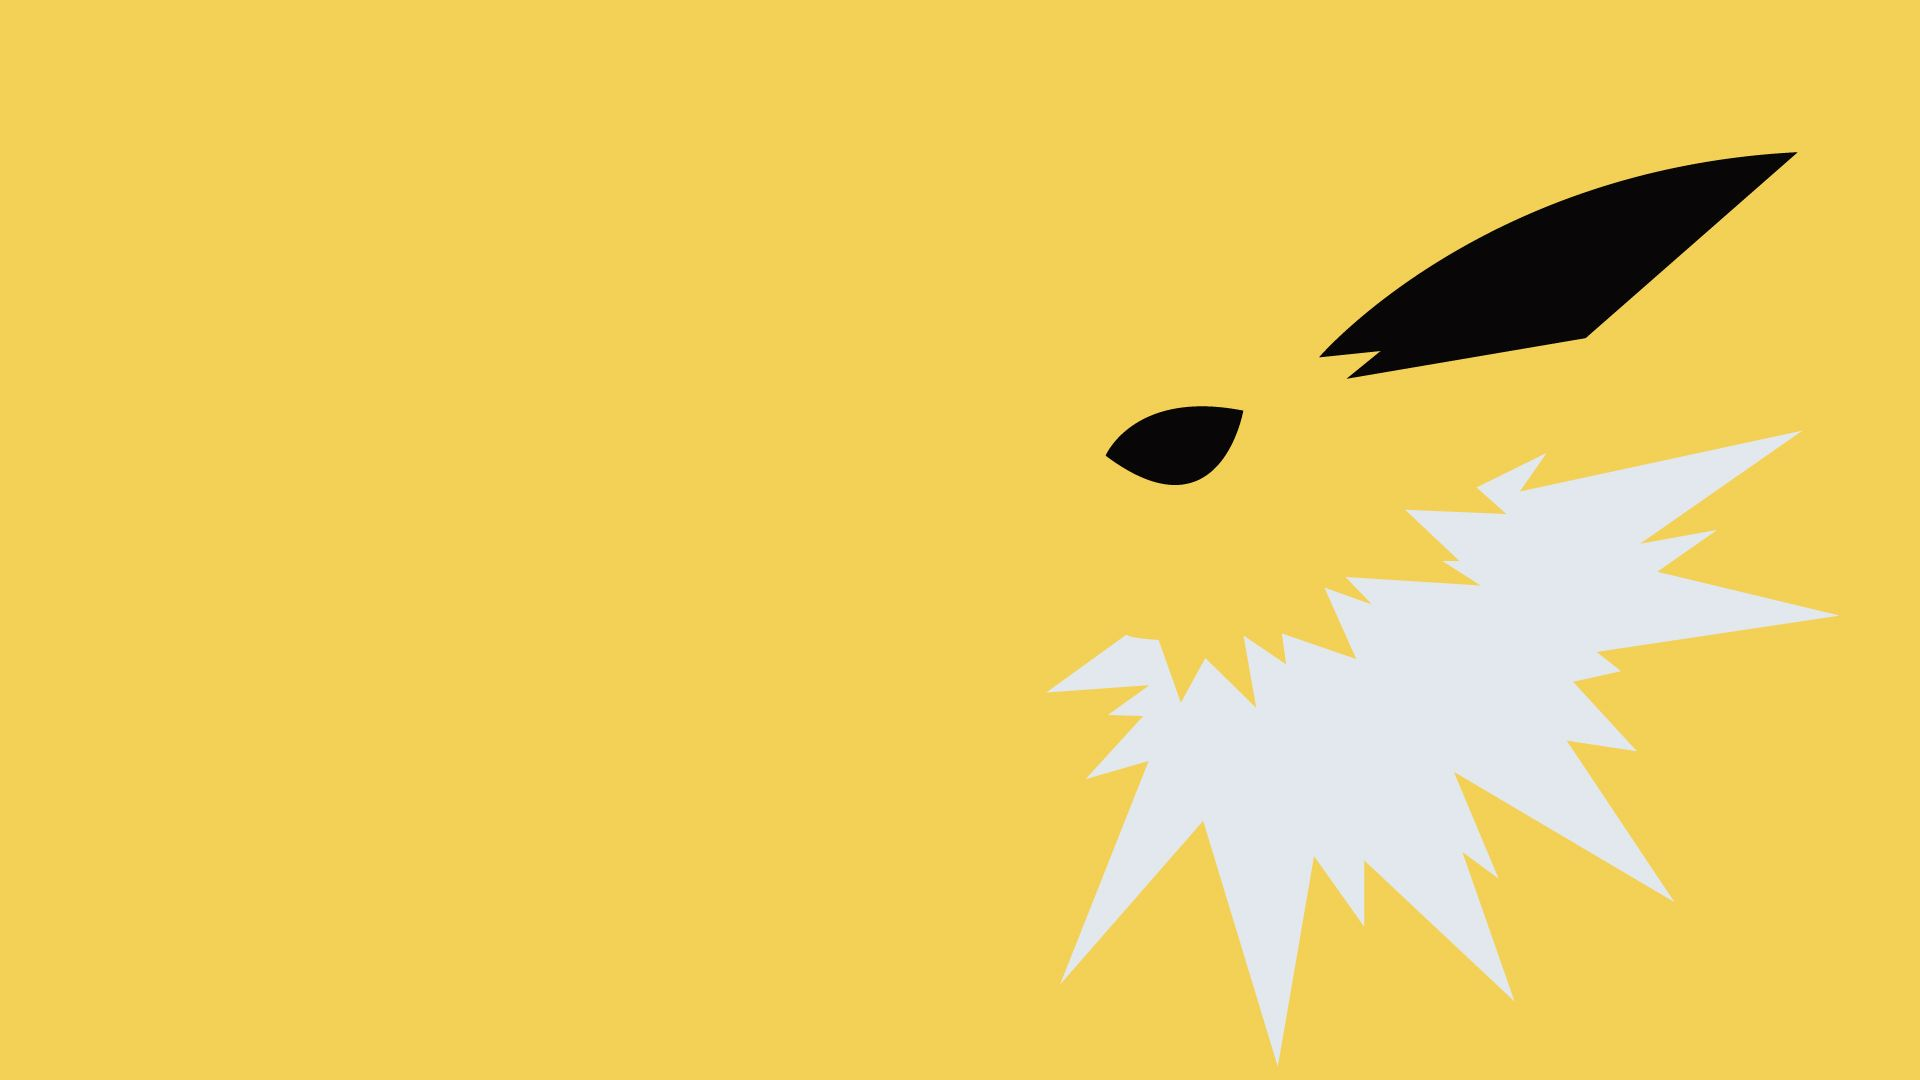 Jolteon Pokemon Backgrounds Star Wars Wallpaper Pokemon Pictures